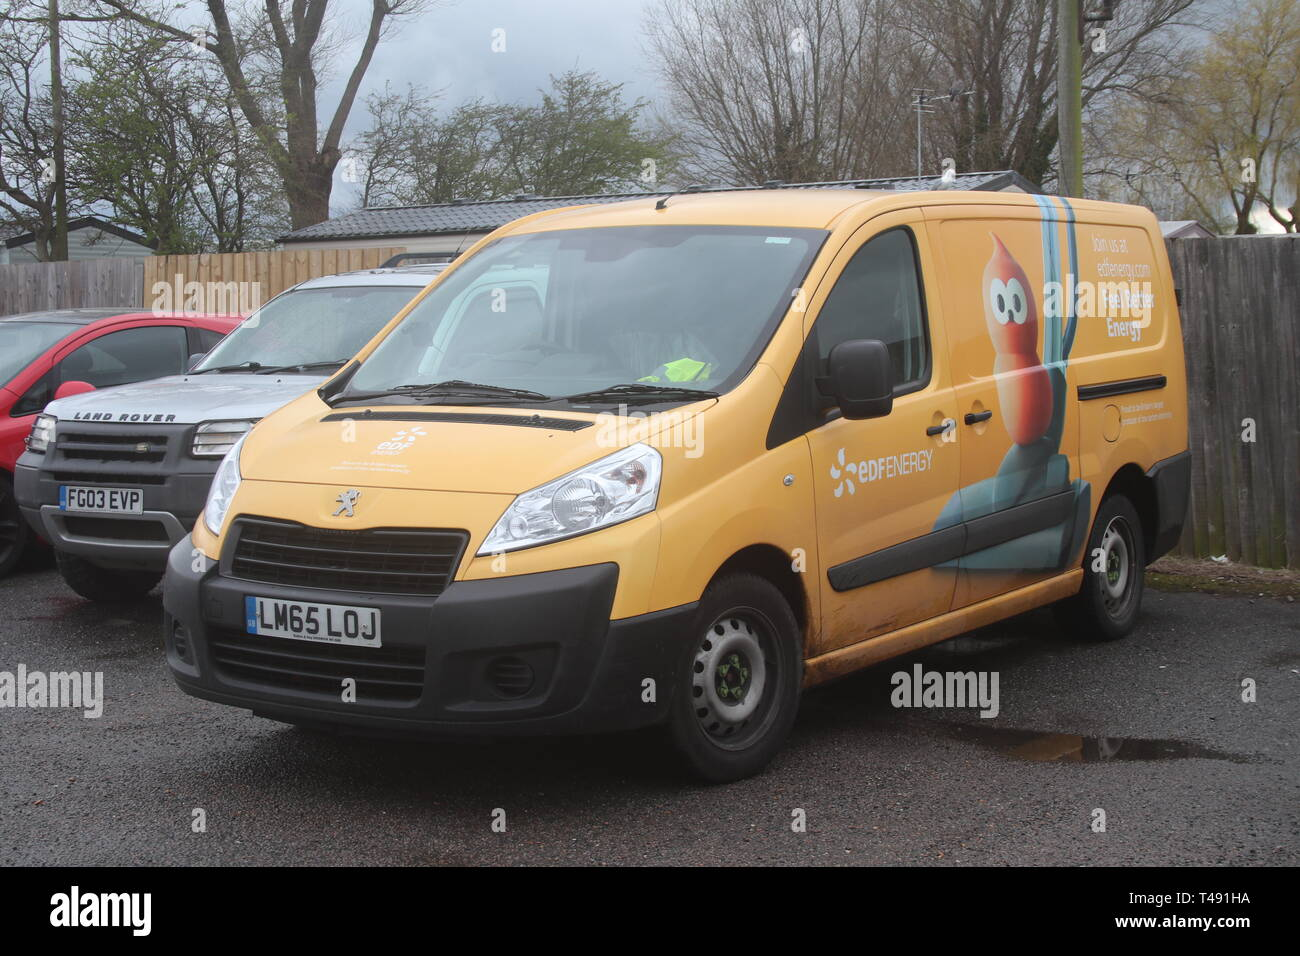 Peugeot Van High Resolution Stock Photography and Images - Alamy